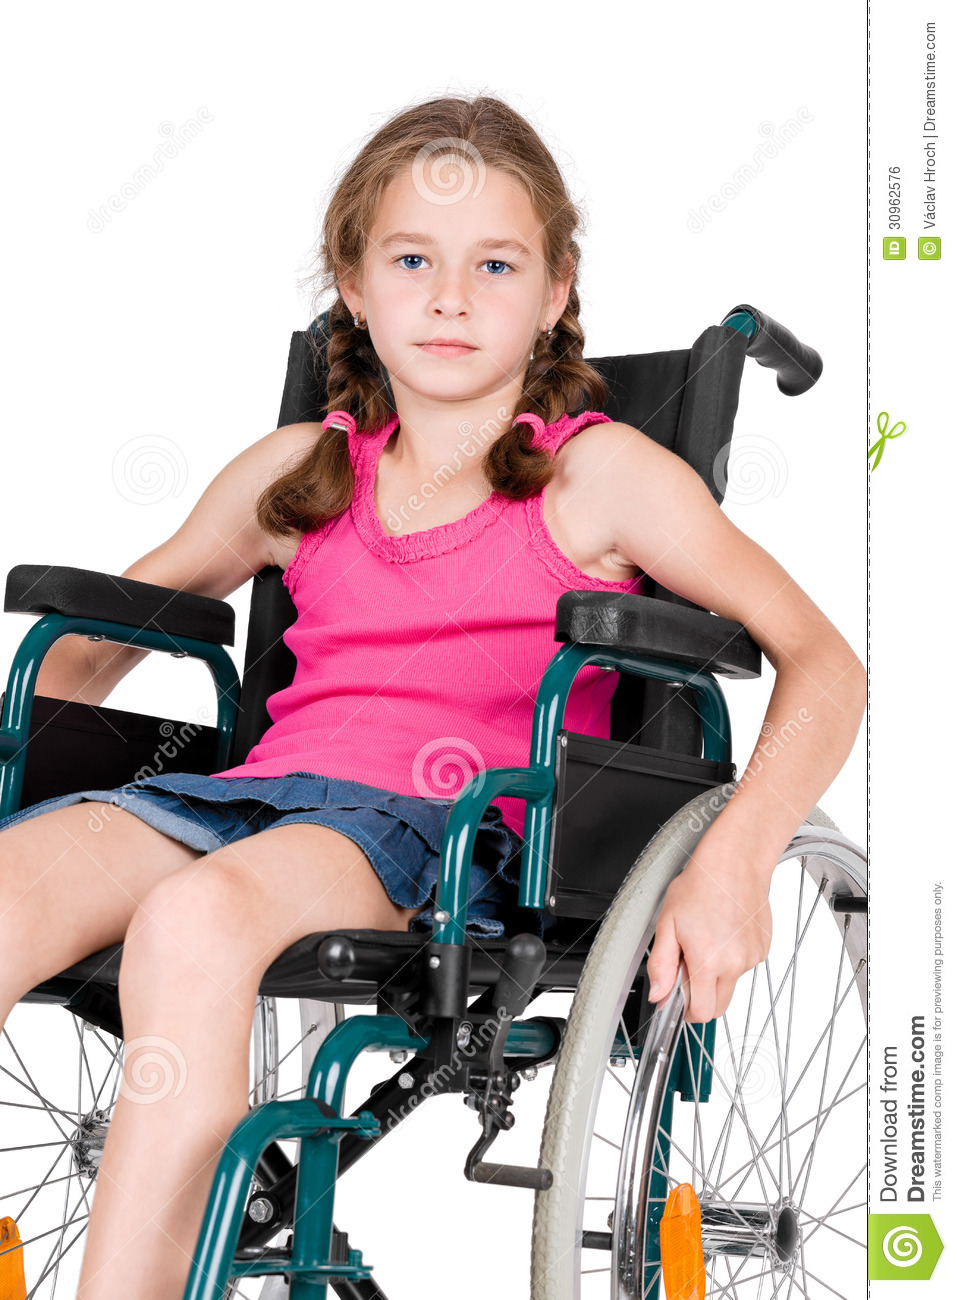 Apologise, Nude girls in wheelchairs